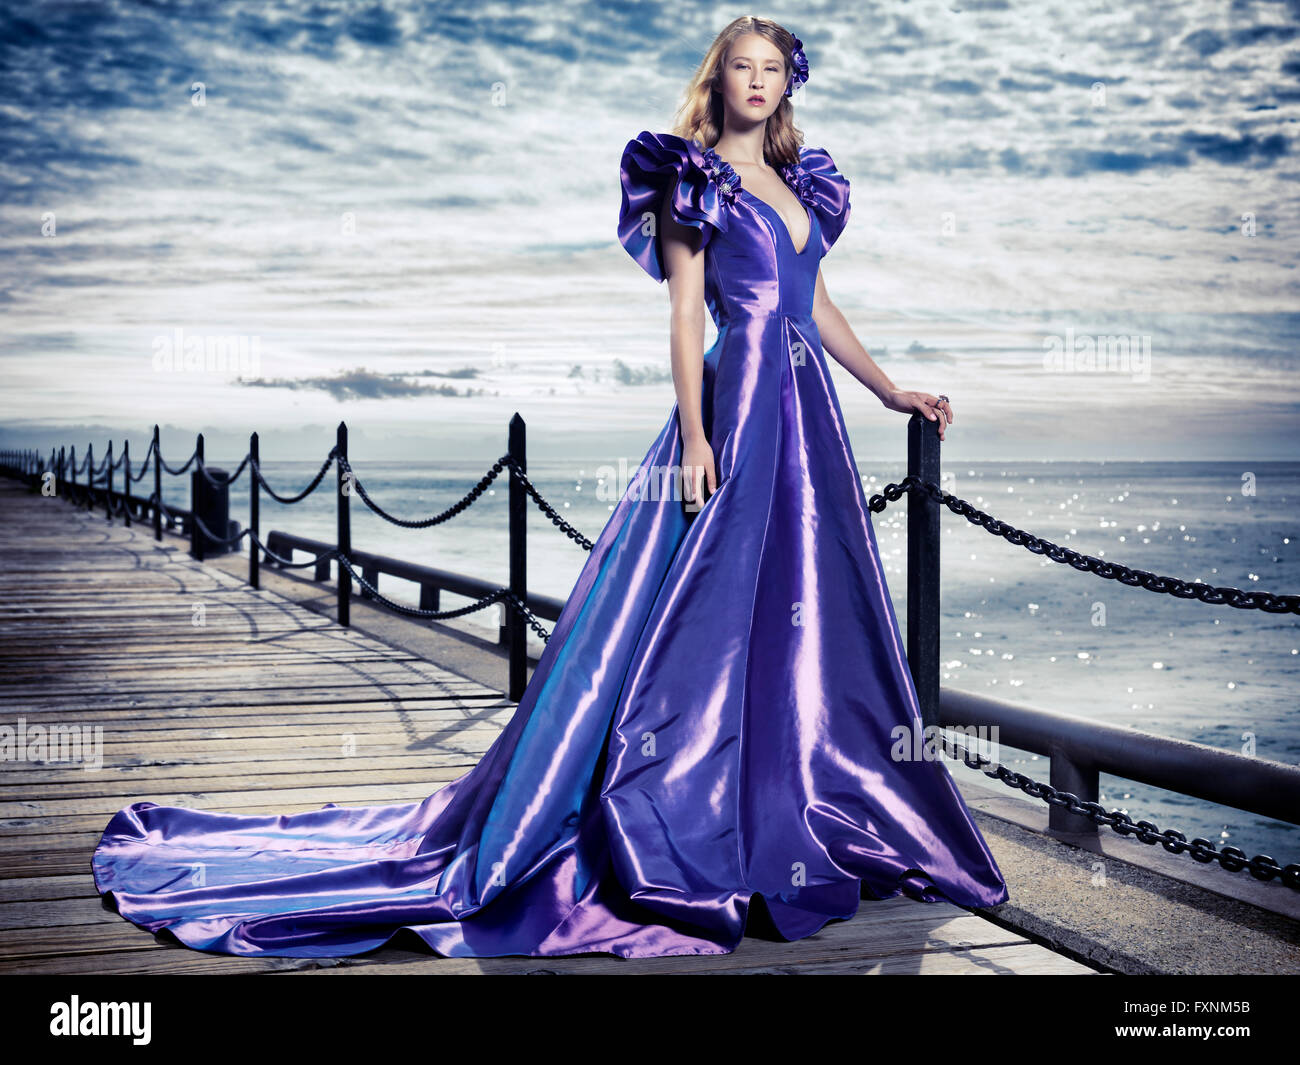 Young woman wearing an evening gown, at waterfront, fashion portrait - Stock Image